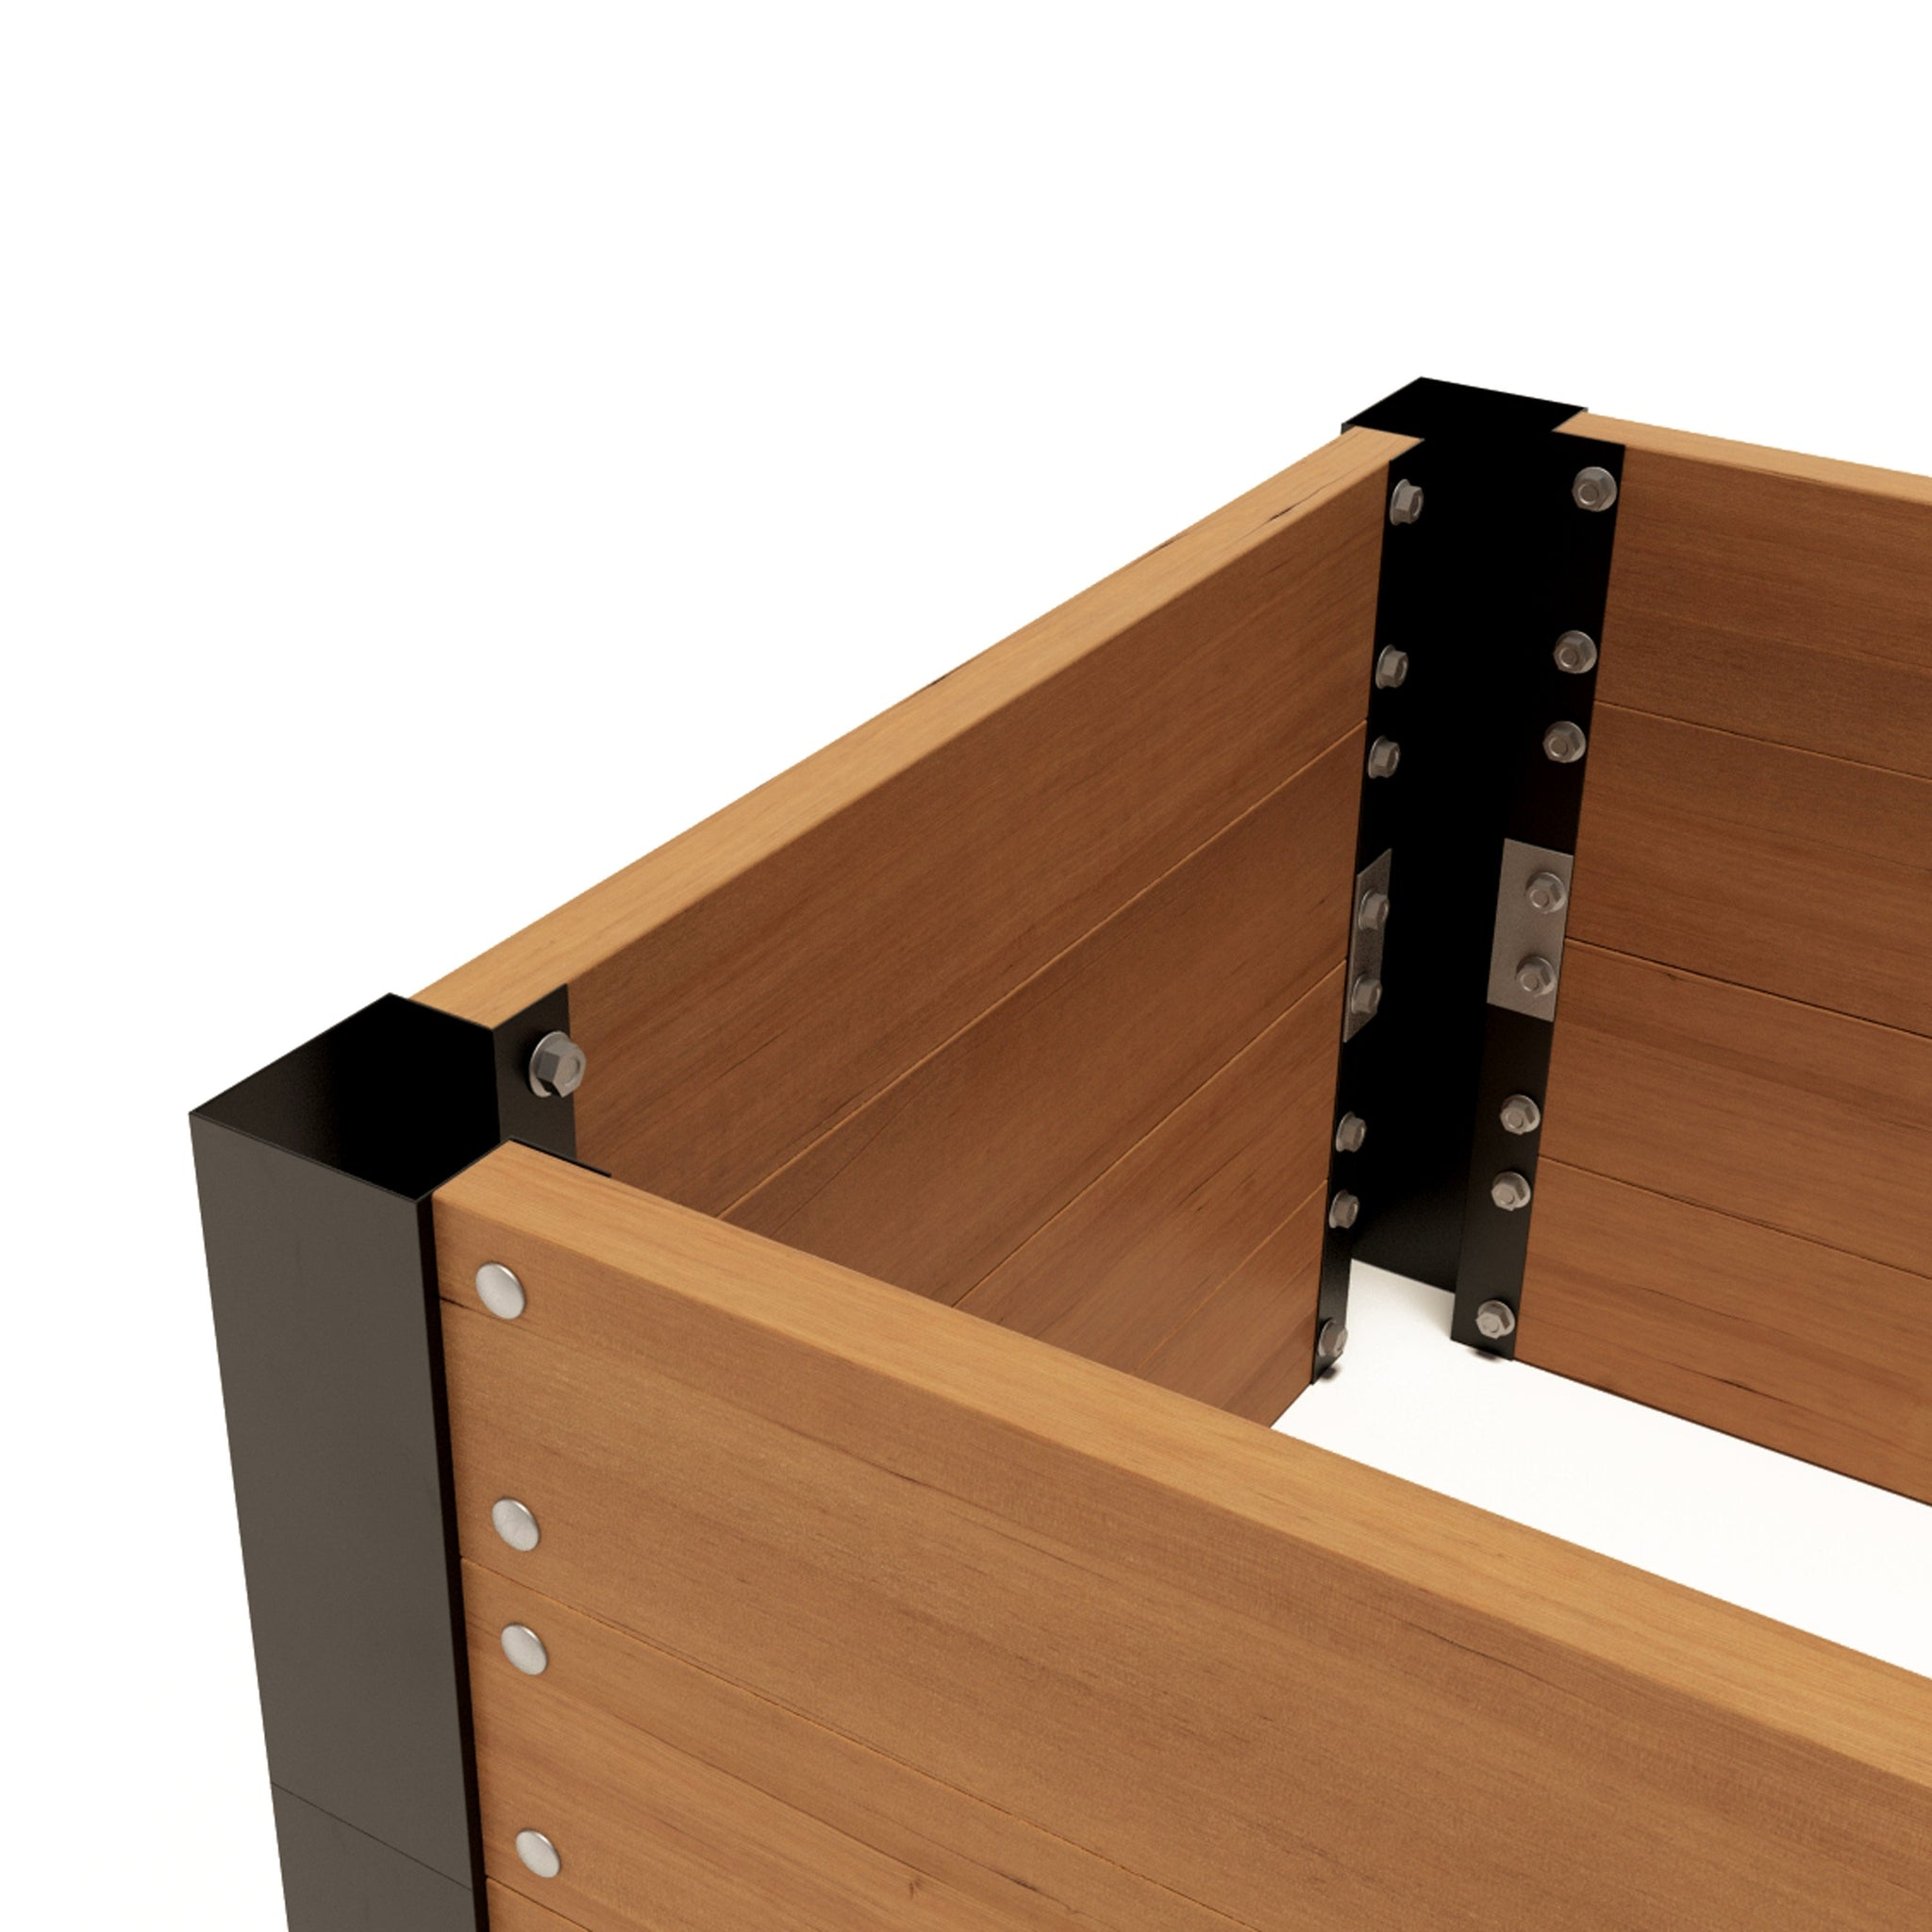 "LIFTED EARTH GARDEN BOX HARDWARE - 22"" CORNER BRACKET KIT WITHOUT SPIKES"